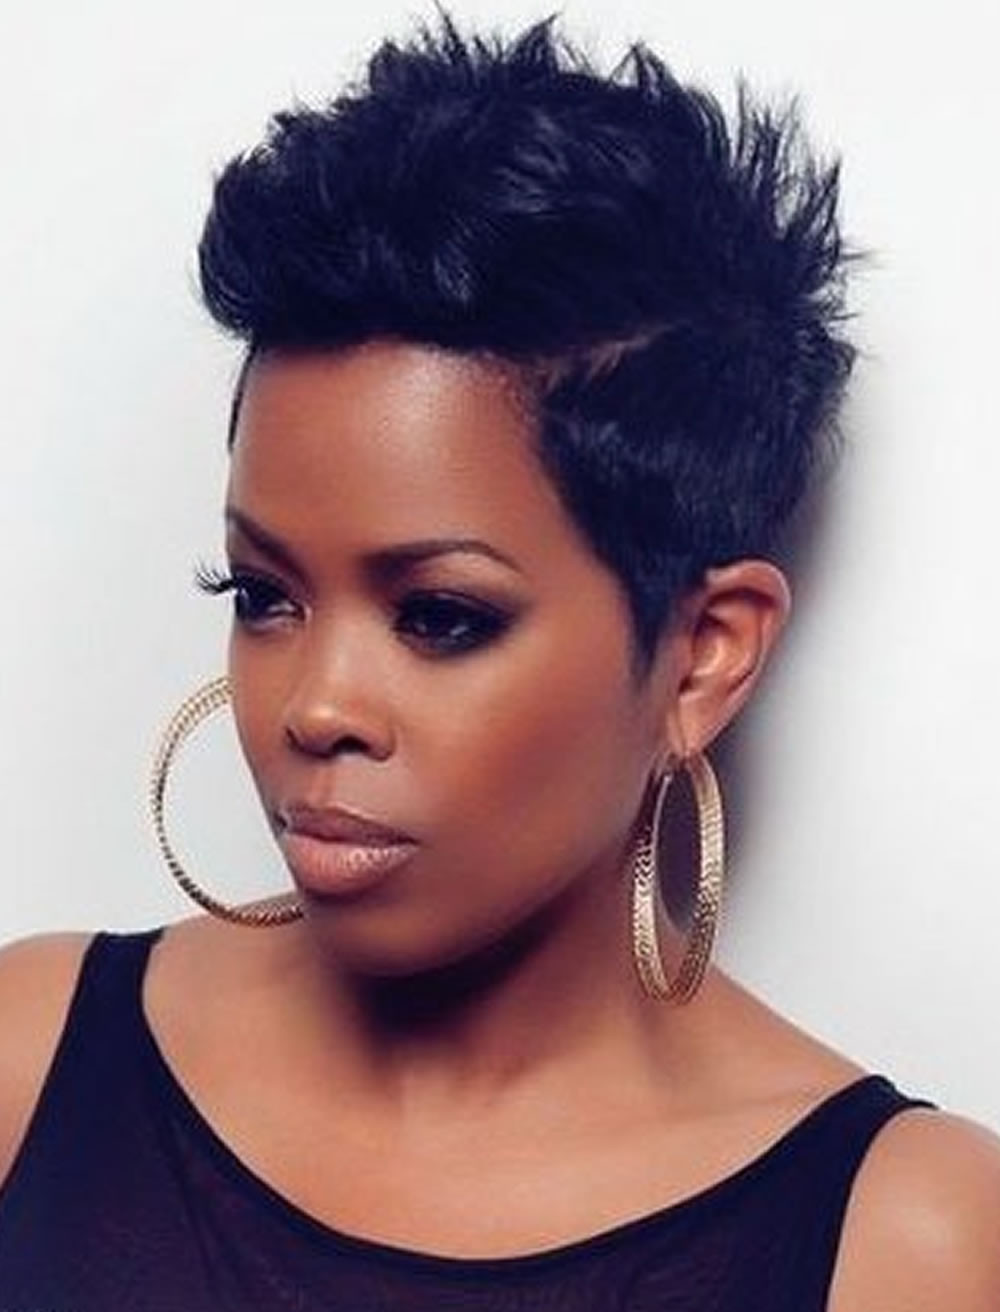 Short Black Hairstyles For 2019  Pixie Short Hairstyles for Black Women 2018 2019 – Page 2